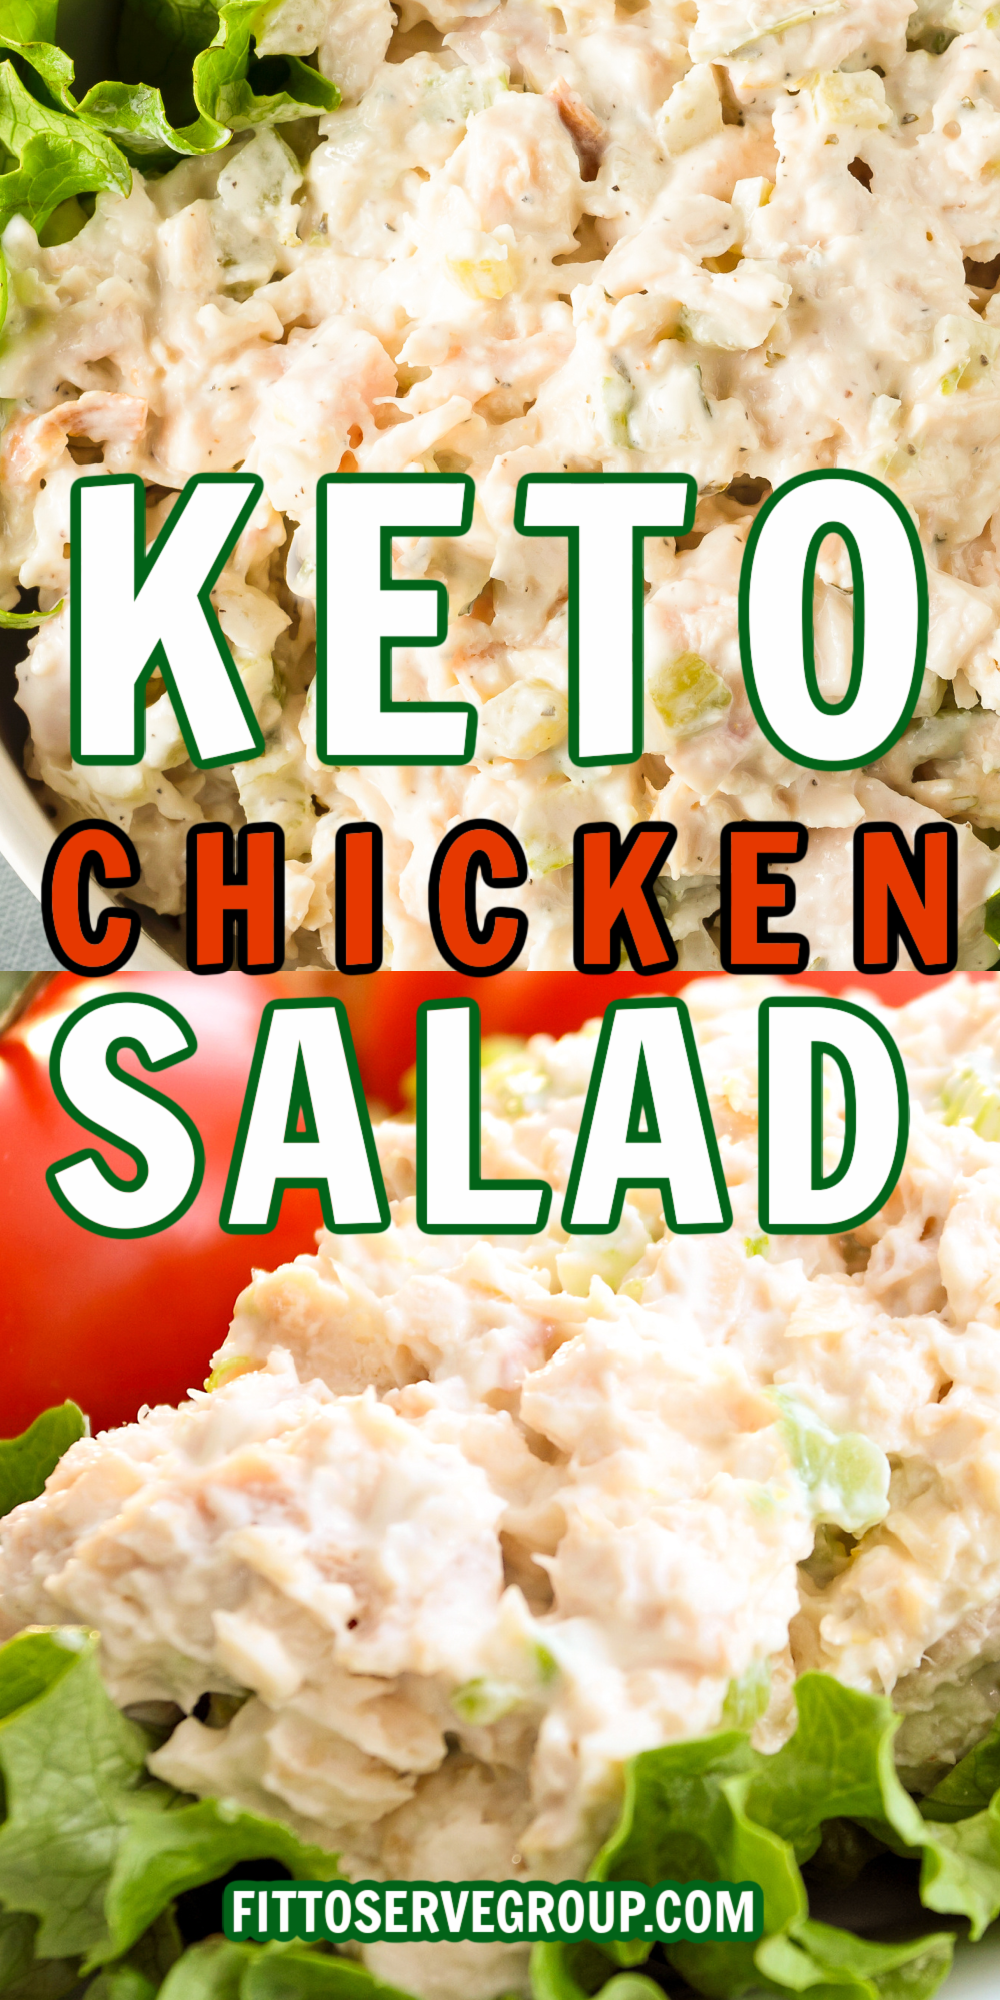 Close up images of keto chicken salad served on bed of romaine lettuce